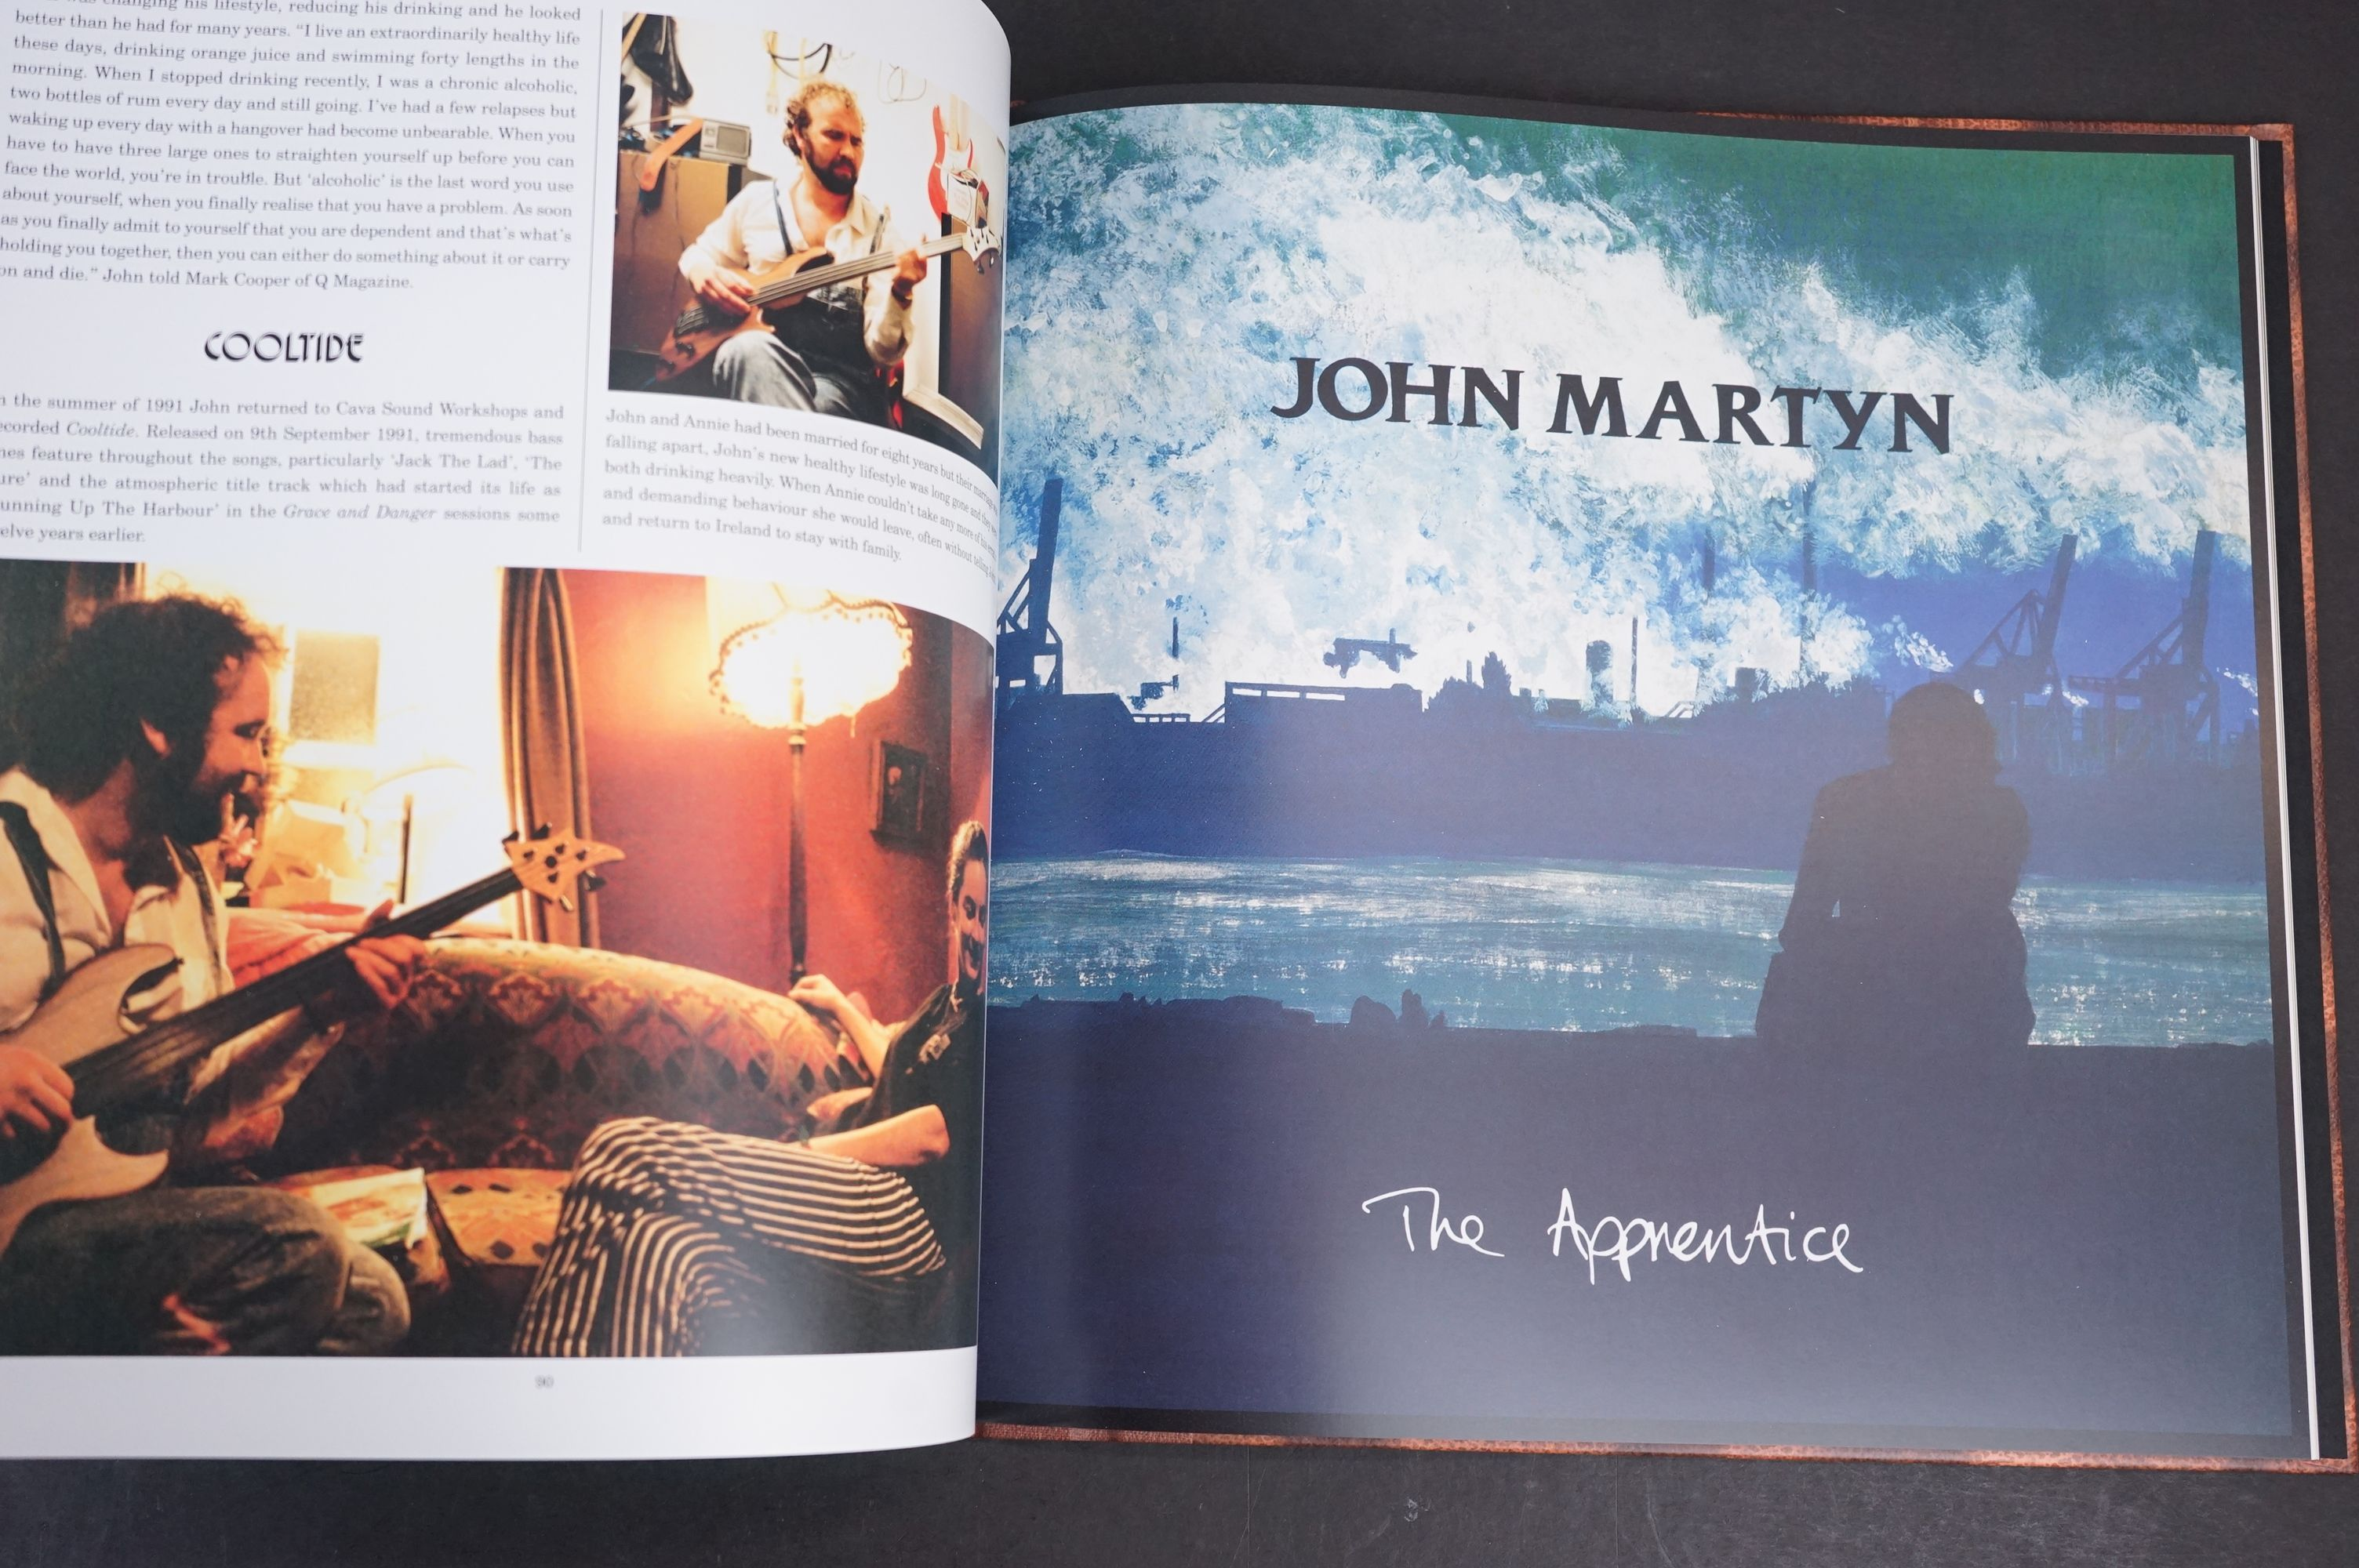 CD / DVD / Vinyl - John Martyn The Island Years 374228-8 complete and ex - Image 4 of 10